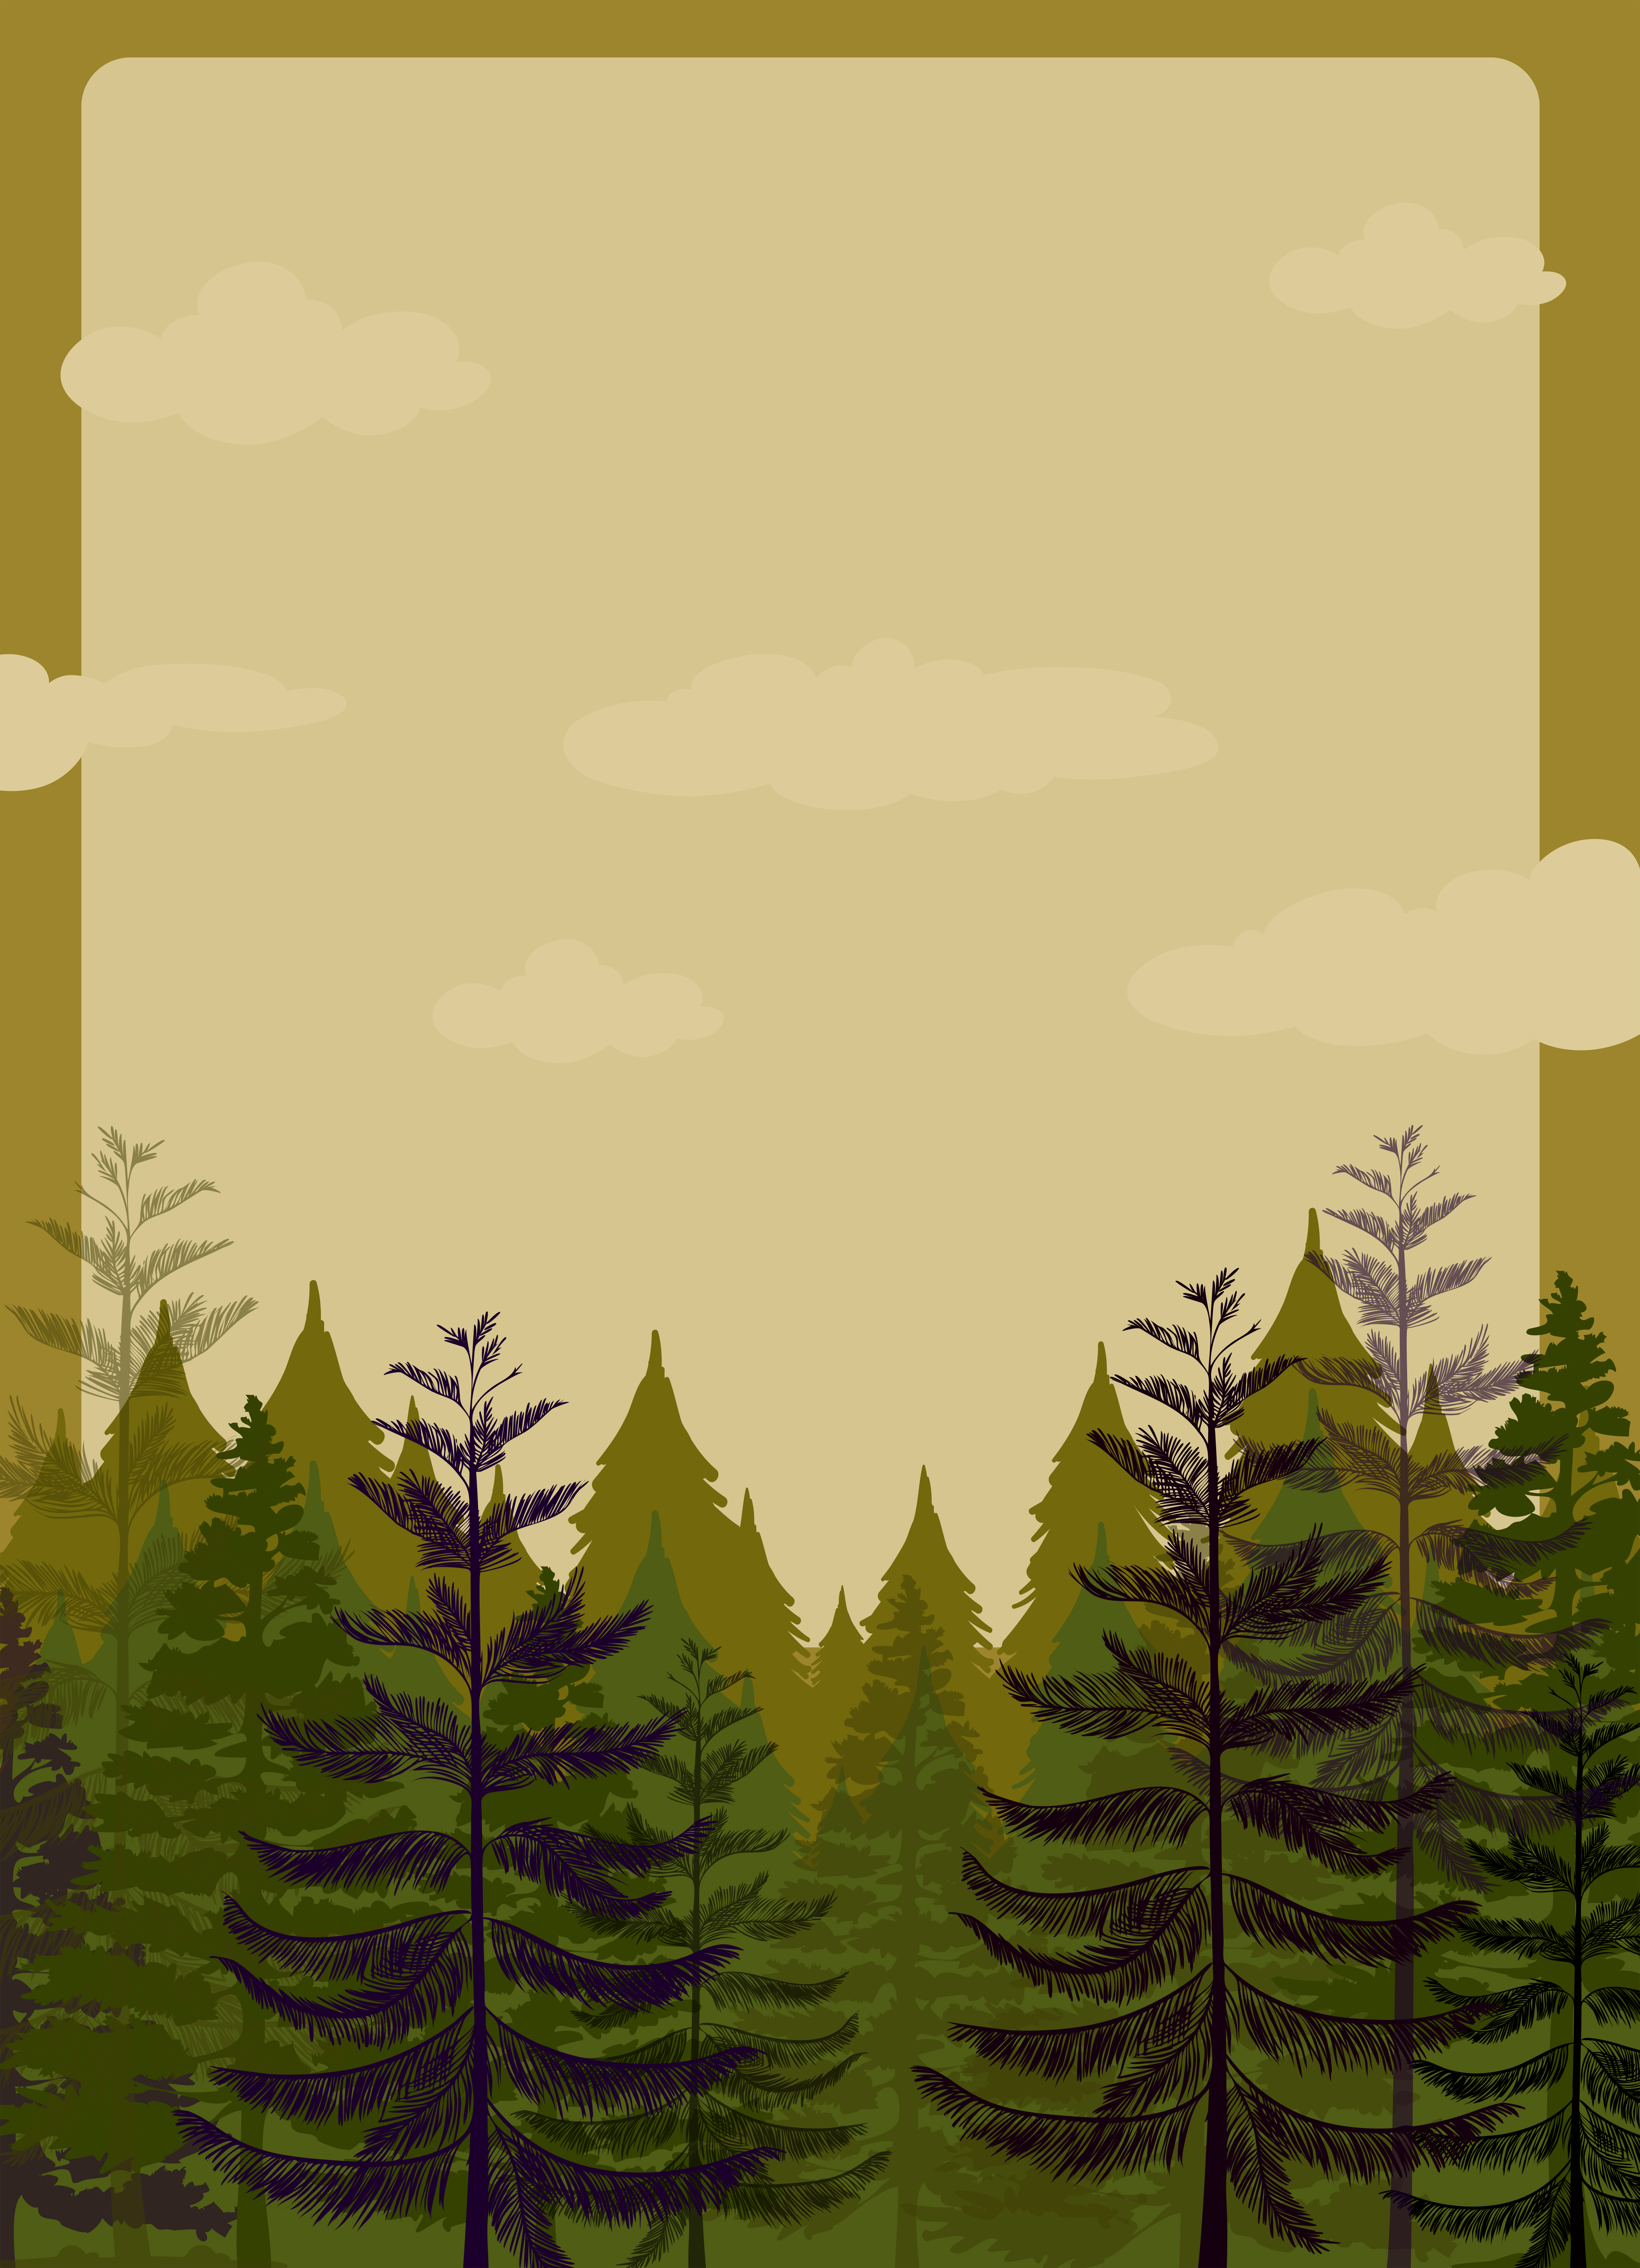 Border design with pine forest - Download Free Vector Art ... | 3988 x 5516 jpeg 6462kB